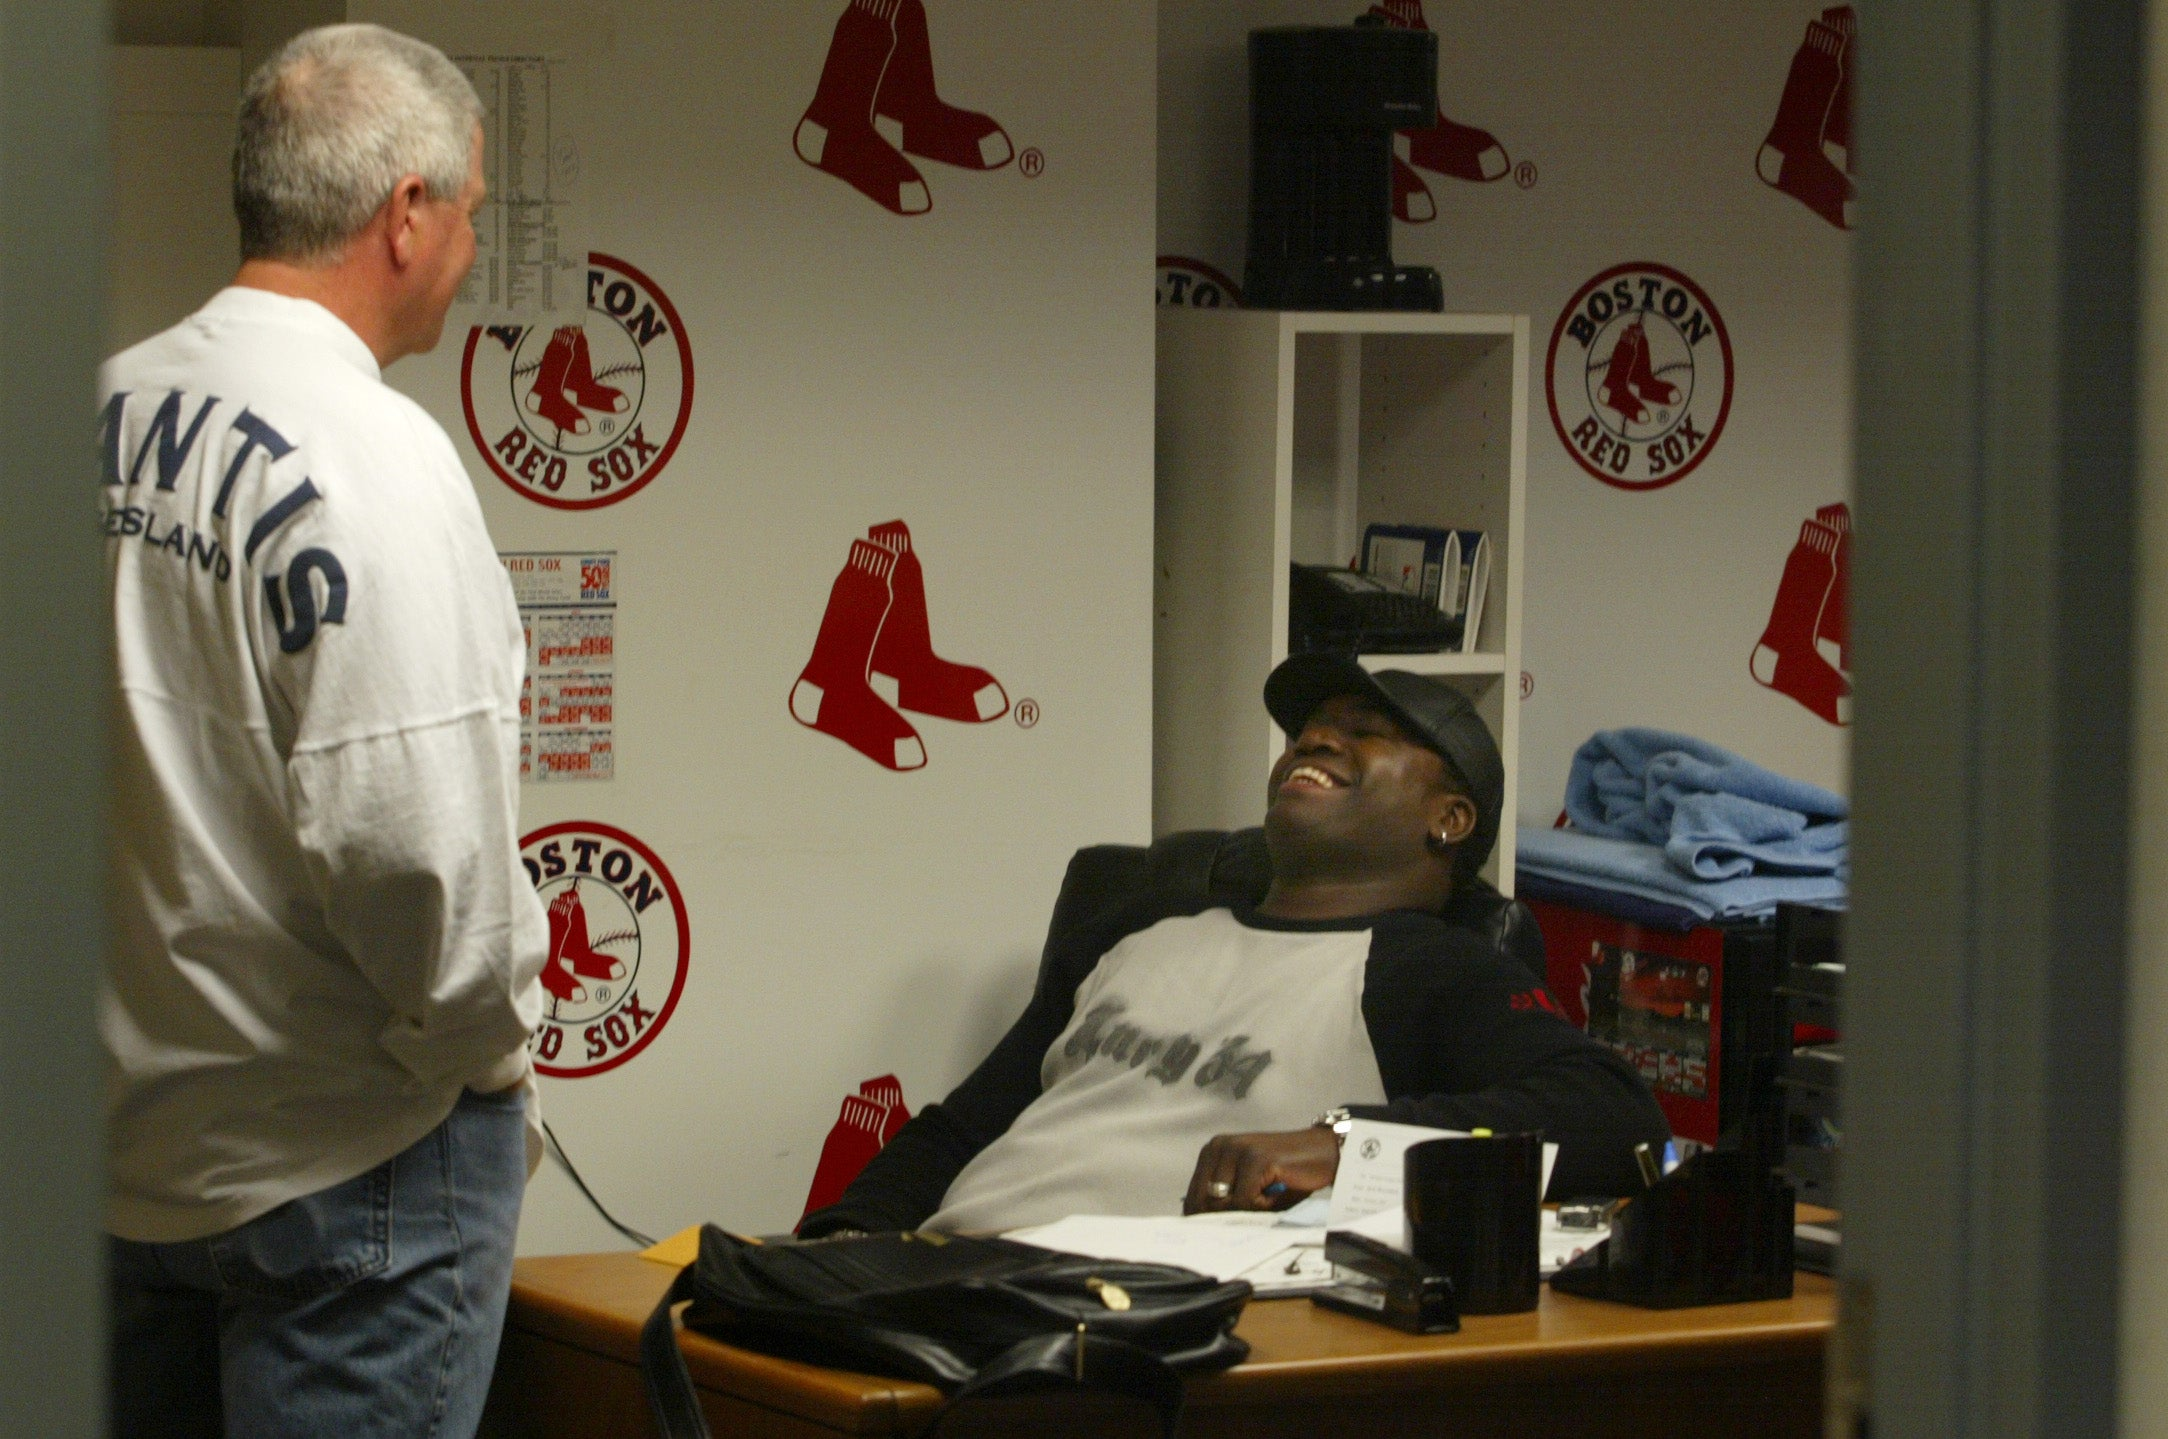 Red Sox manager Grady Little enters his office to find David Ortiz in his chair in the Red Sox clubhouse following the loss to the Yankees in Game 7 of the 2003 ALCS.